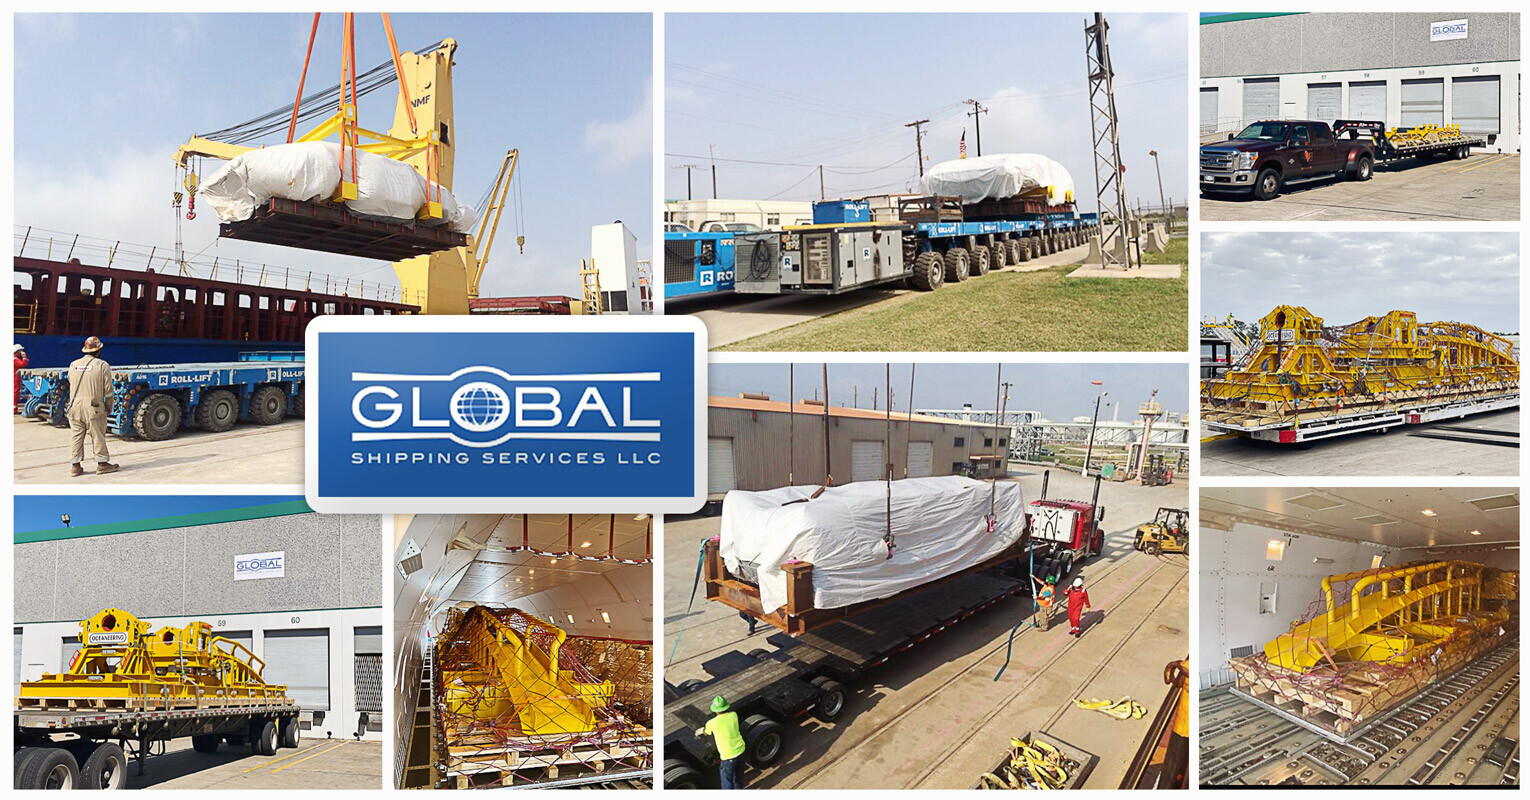 New member representing the United States – Global Shipping Services